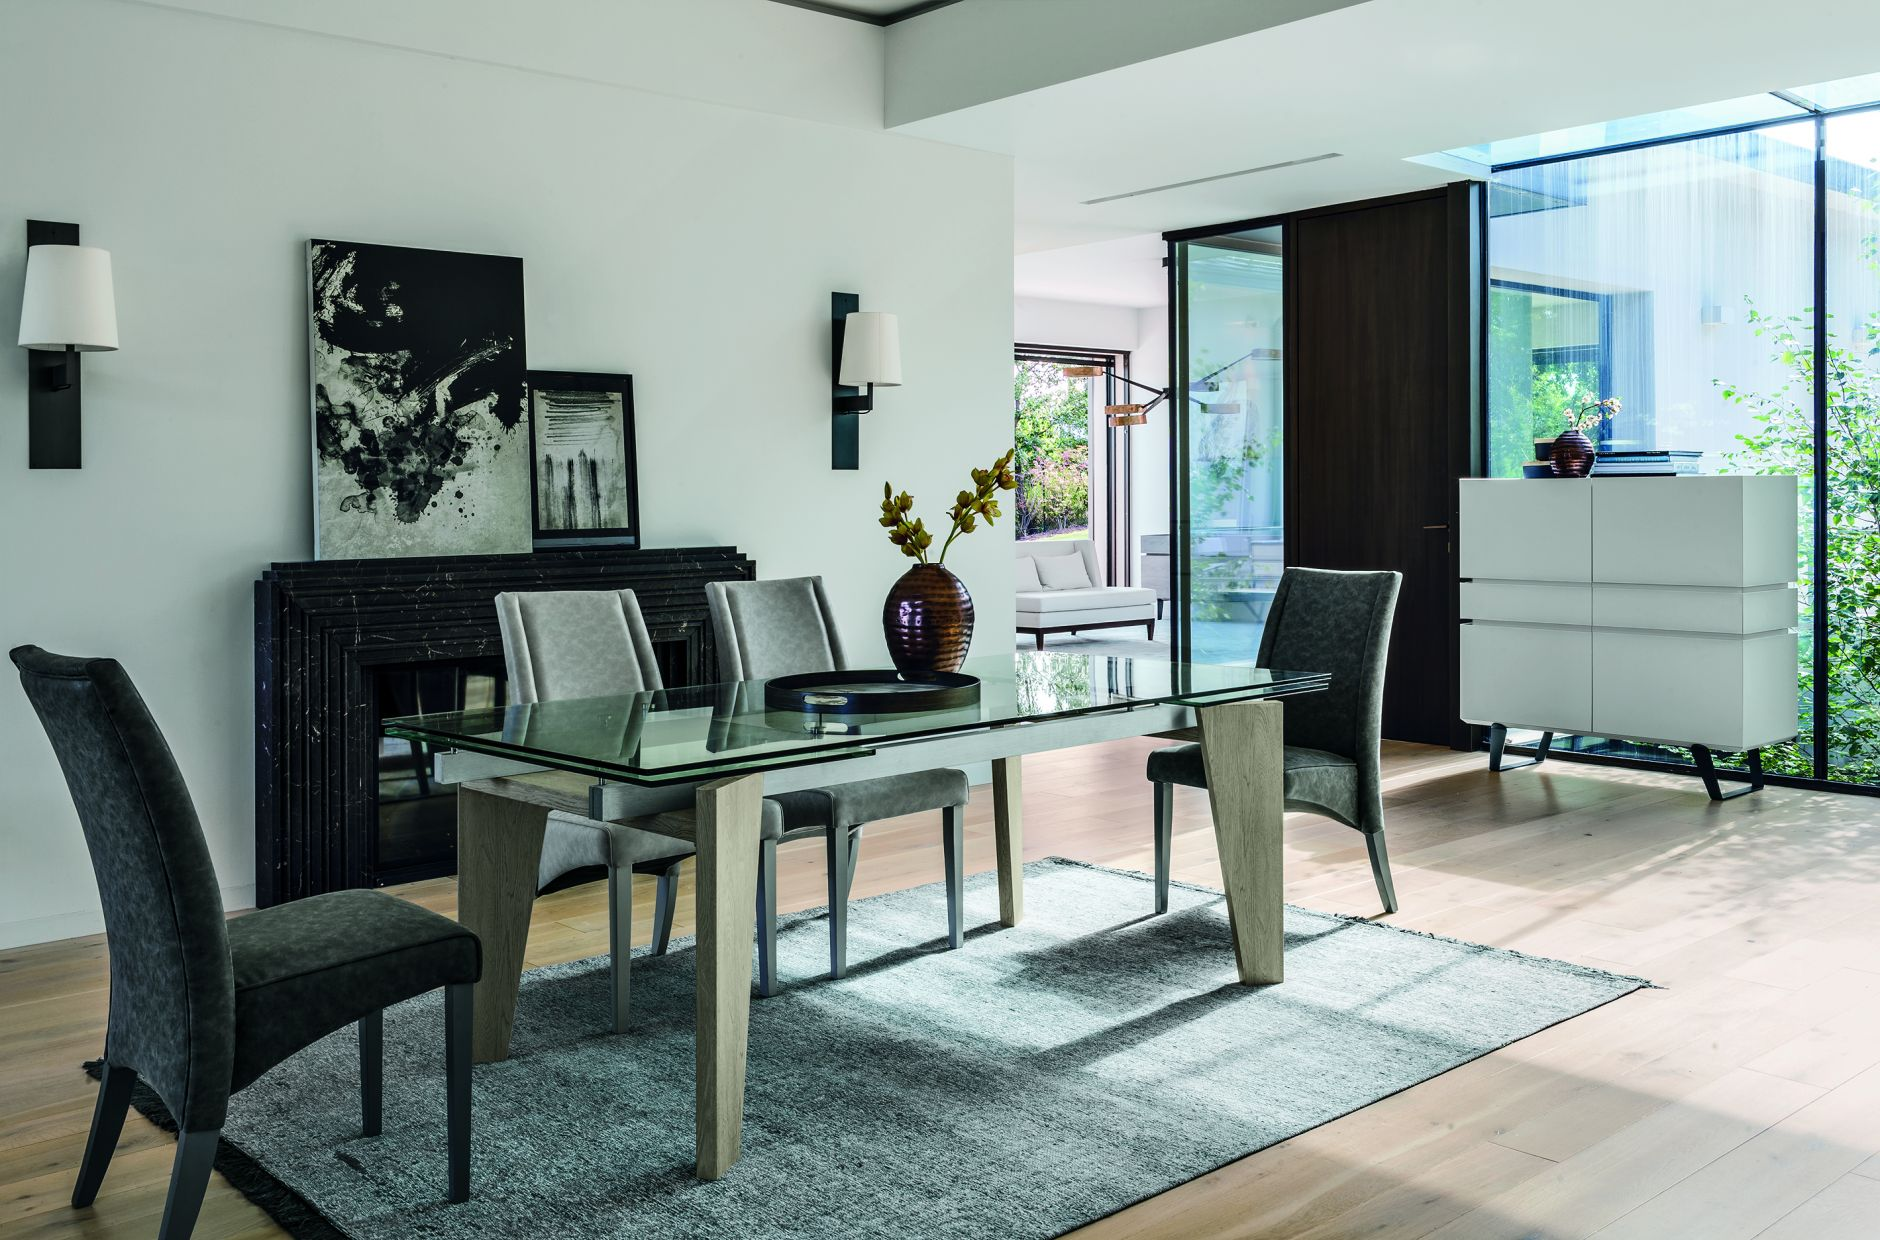 Dinning rooms and chairs dining room table target point stratos seriesfurniture from italy - Target dining room tables ...